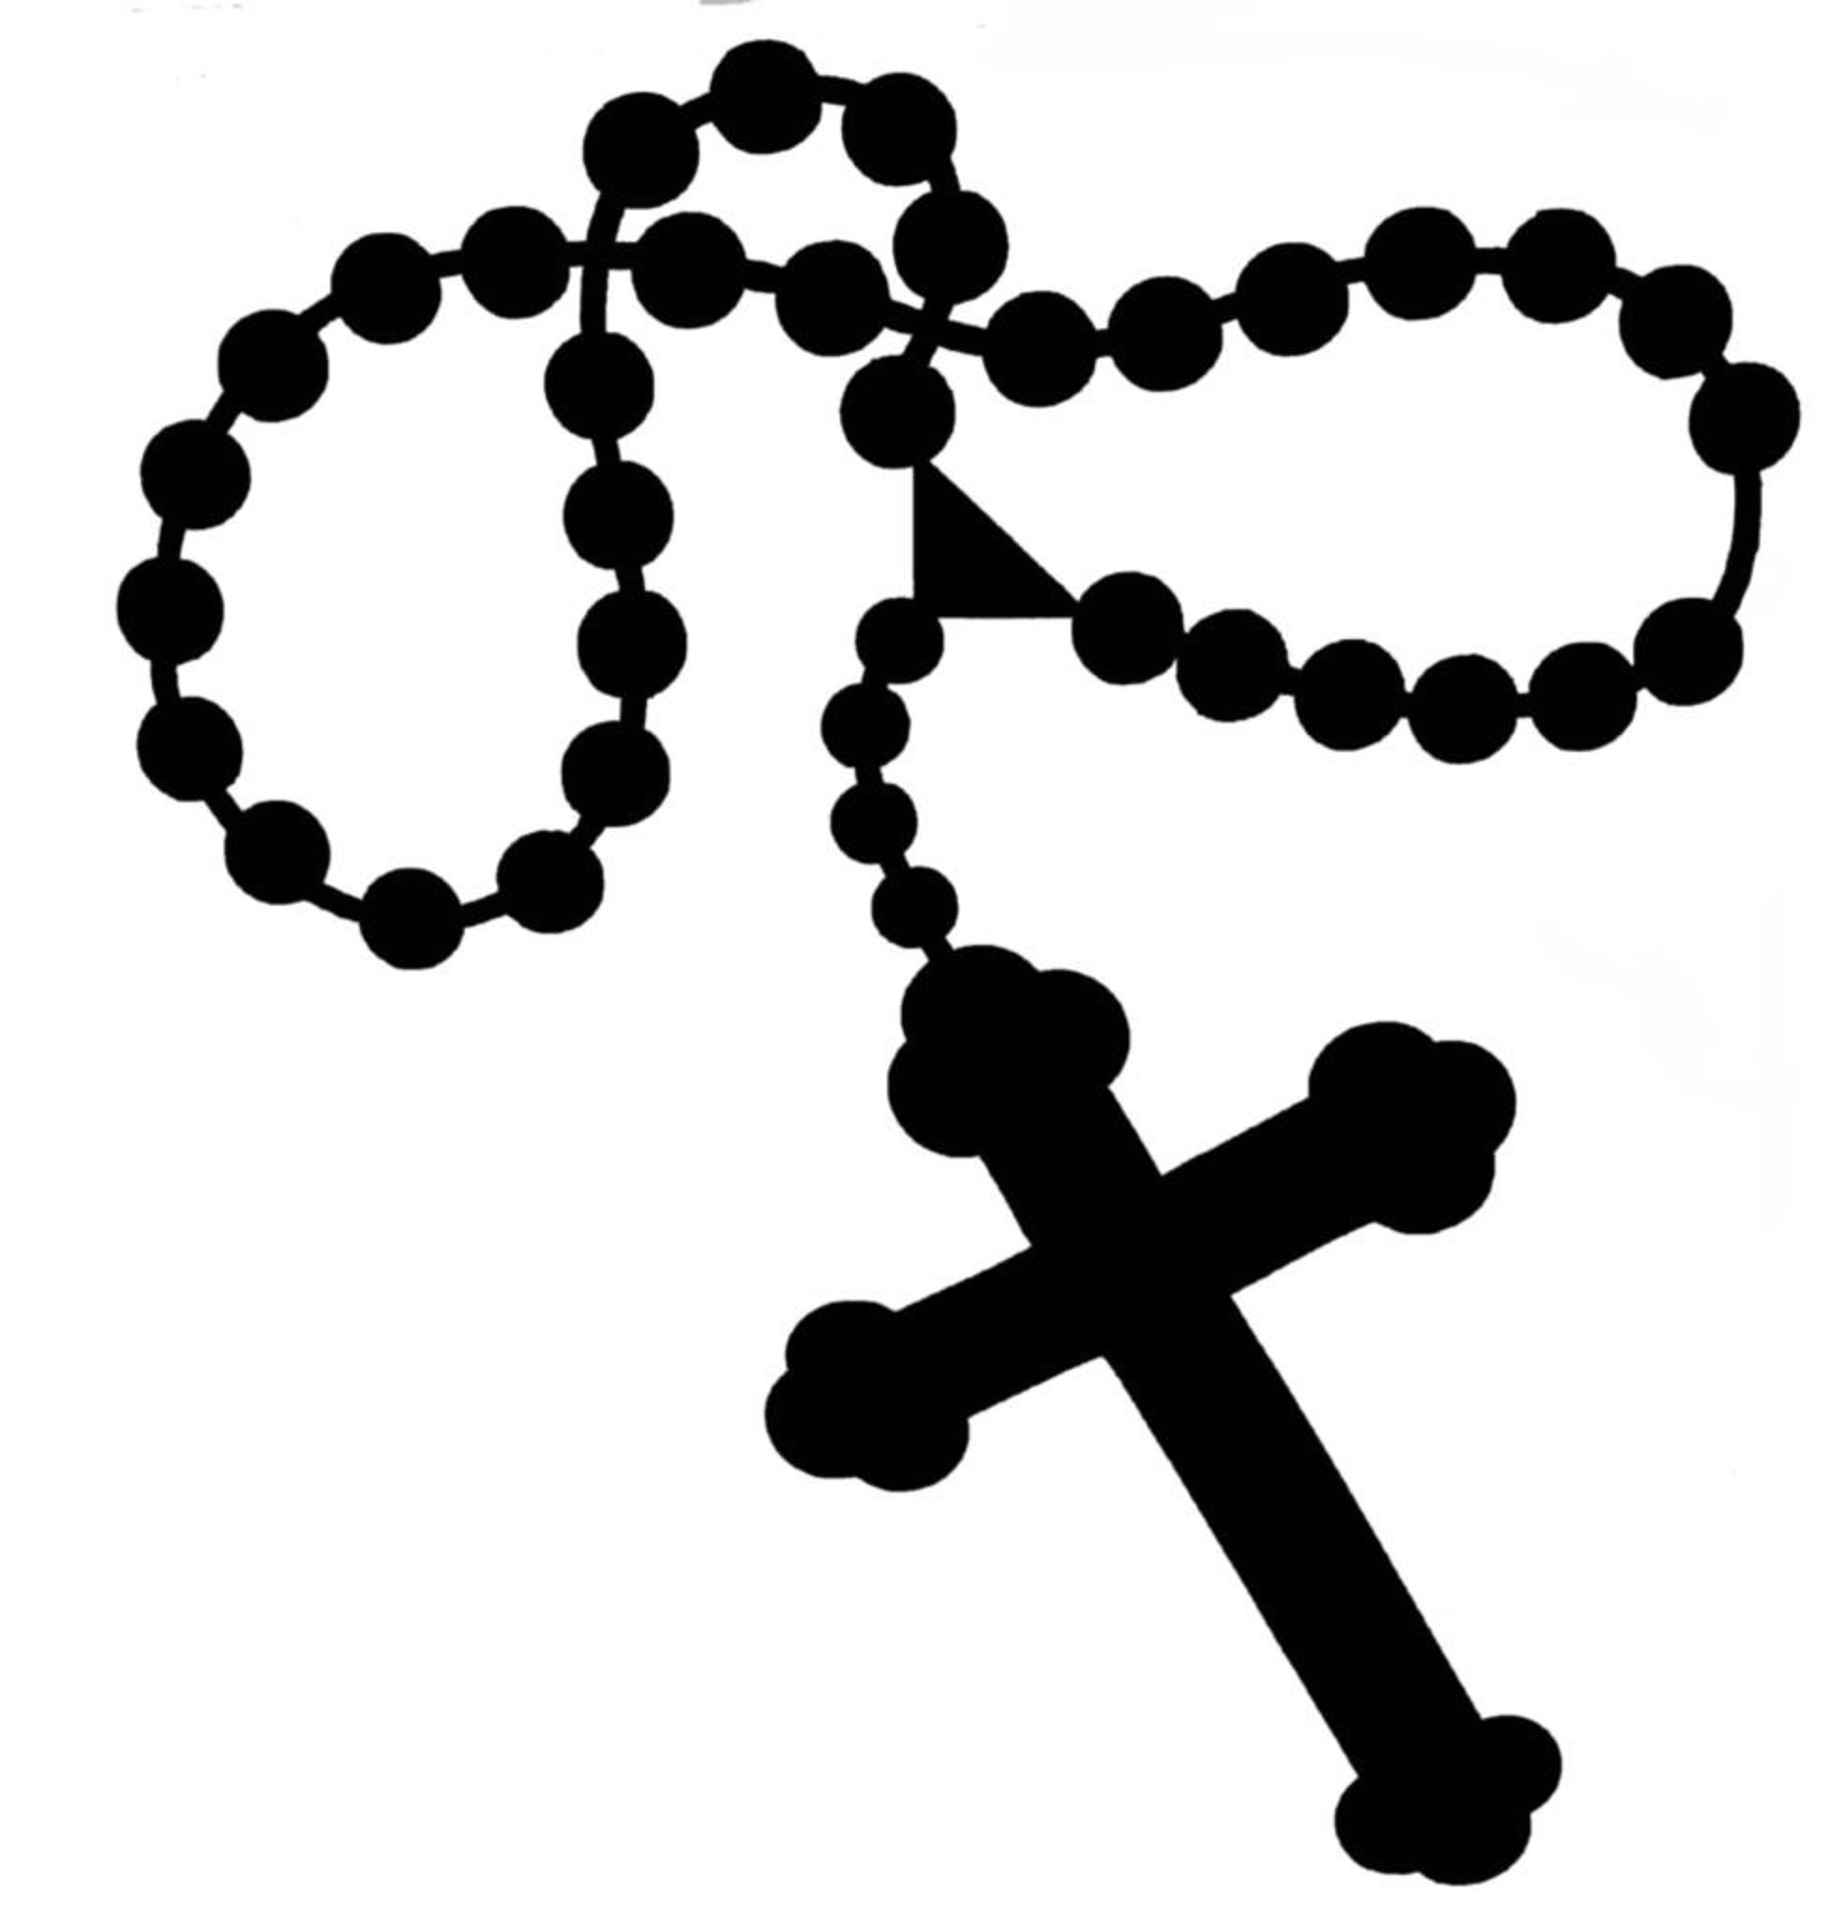 Altar clipart black and white #9